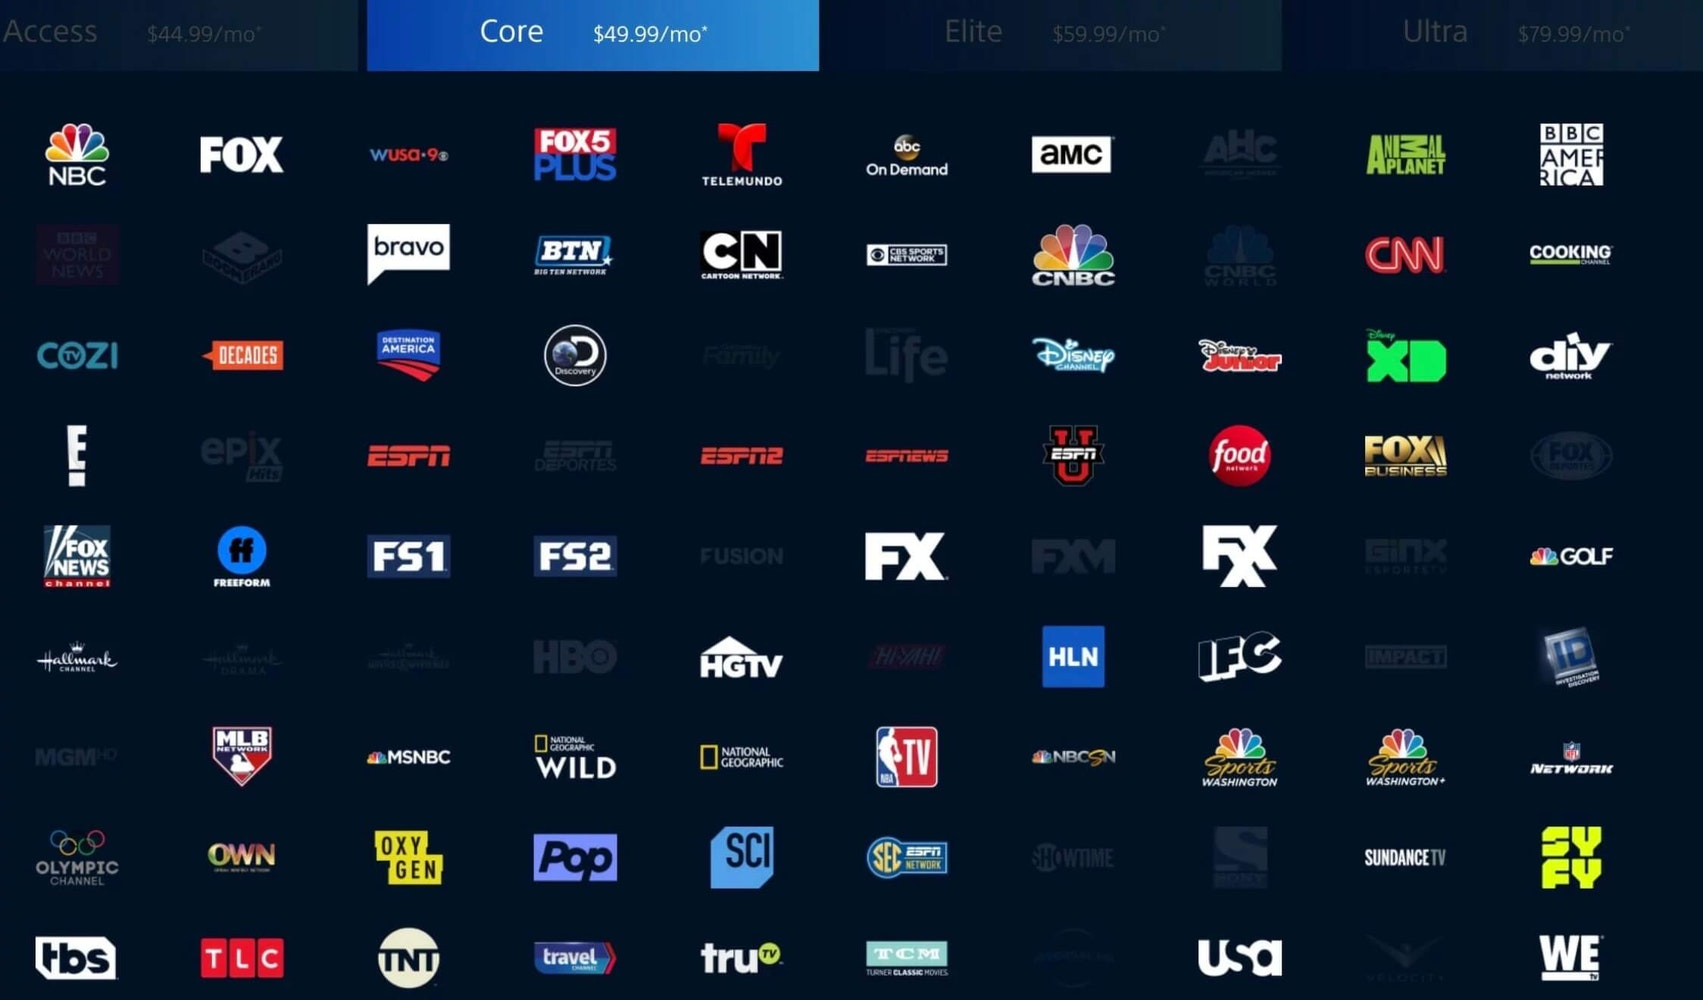 2019-20 premier league liverpool vs leicester city soccer live stream free playstation vue